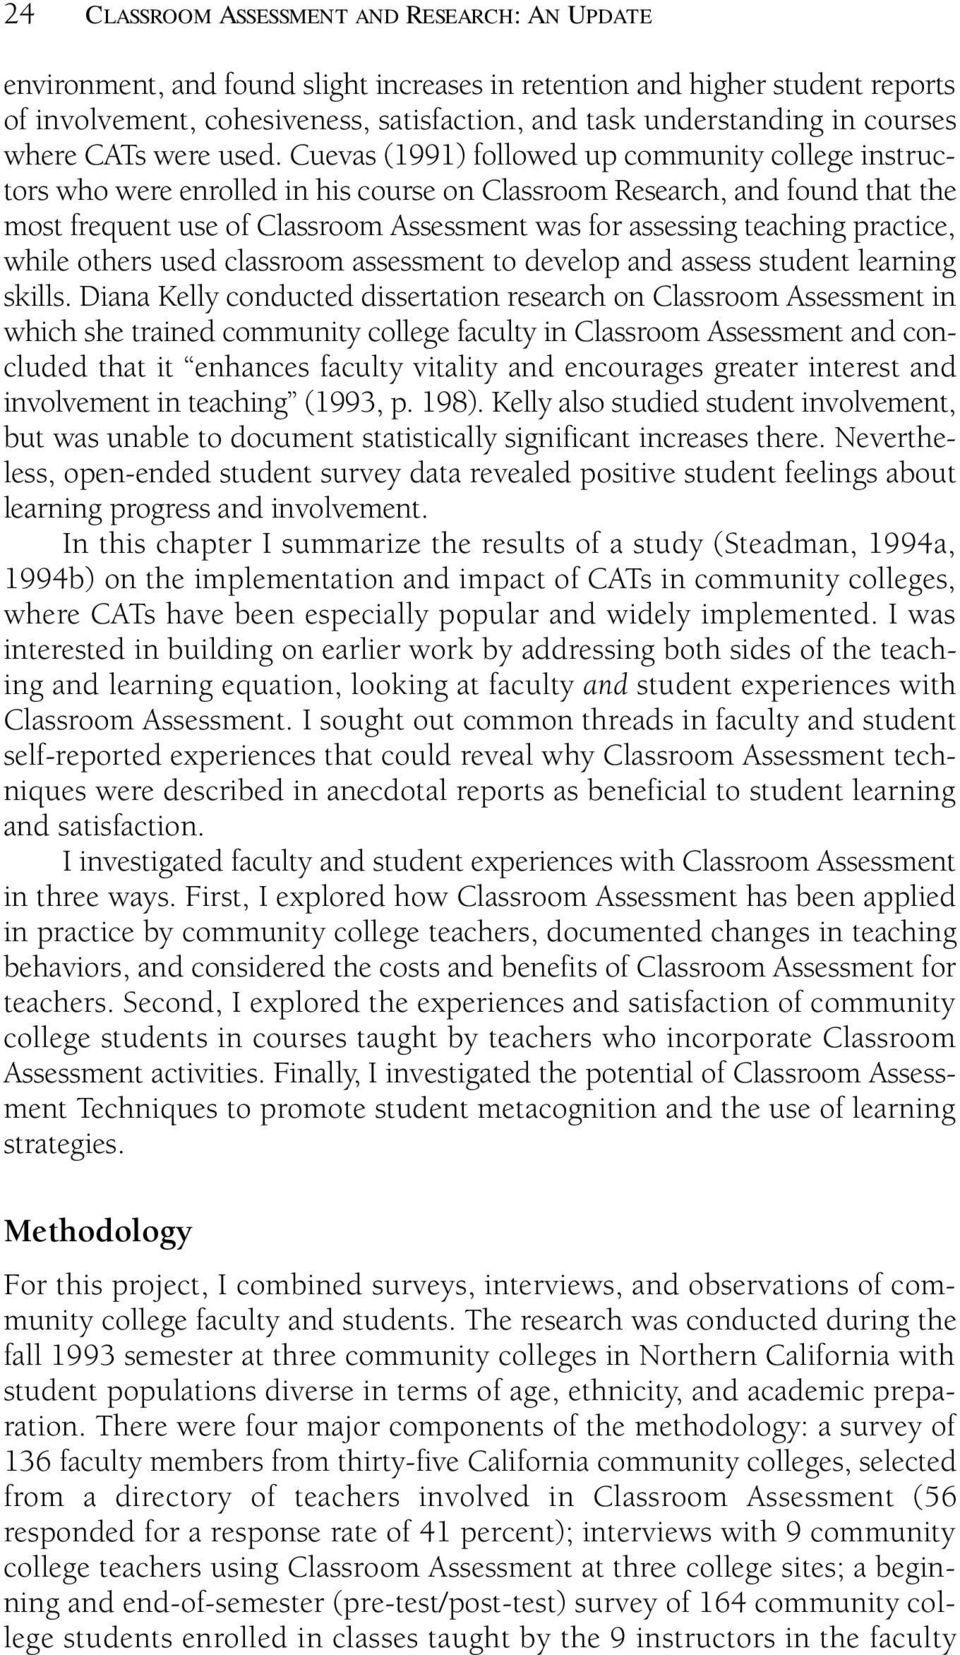 Cuevas (1991) followed up community college instructors who were enrolled in his course on Classroom Research, and found that the most frequent use of Classroom Assessment was for assessing teaching